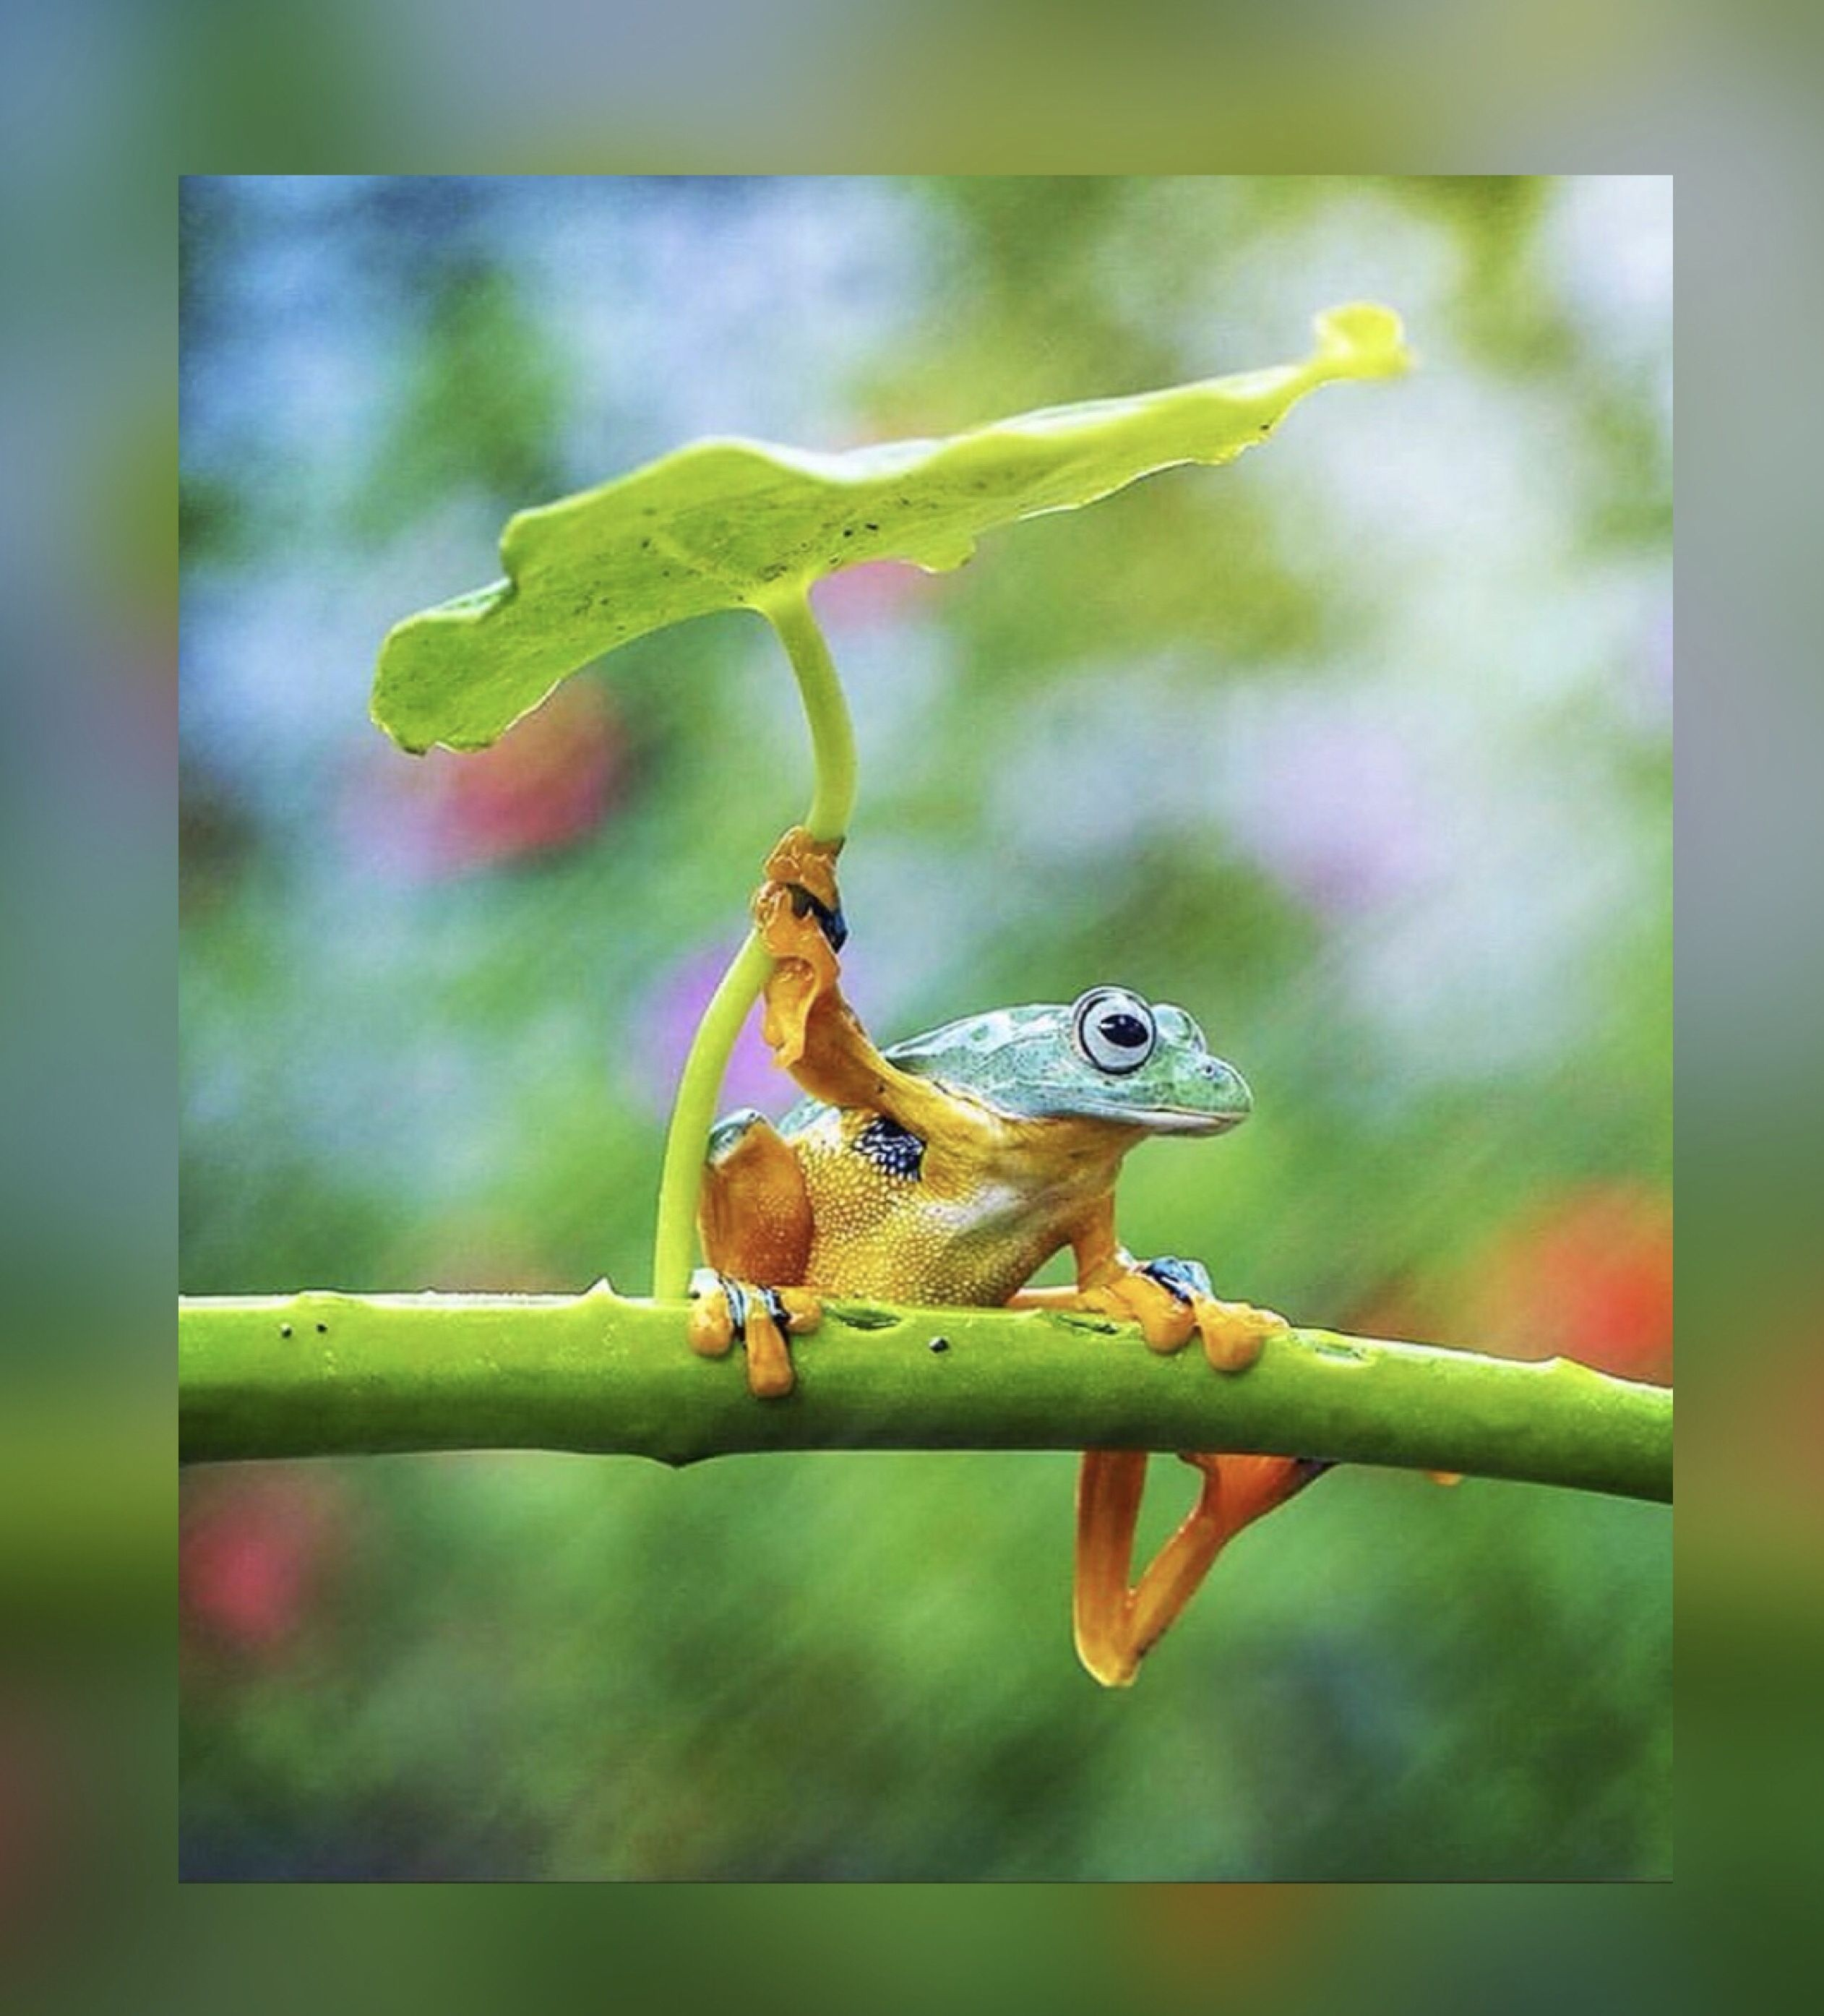 Pin by Kar3n.59 on Jehovah's Awesome Creation Cute frogs